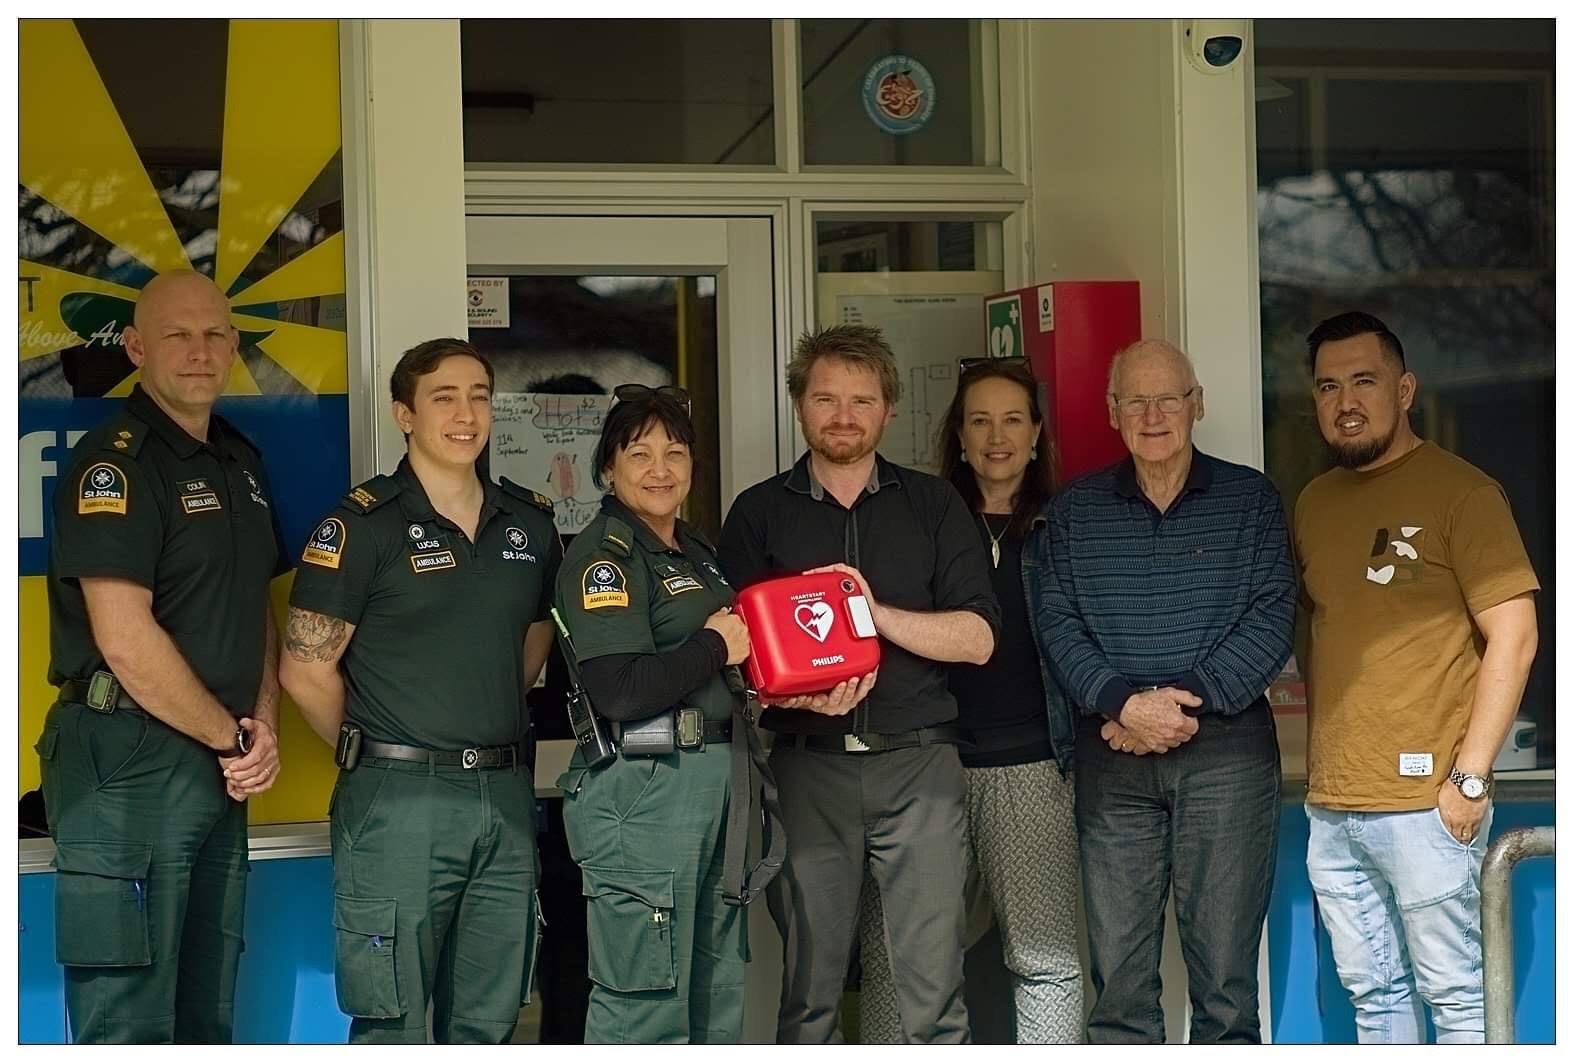 AED @ Waihi East School - The Forum has purchased a AED (defibrillator) and have donated it to Waihi East School which is a central hub to be accessed by residents of the Waihi East area. AED being presented to Zac the Principal, along with Nani, Bindy and Mike from the Waihi Community Forum as well as some of the wonderful staff from St John, Waihi. Look out for our article in the Waihi Leader soon with further information.